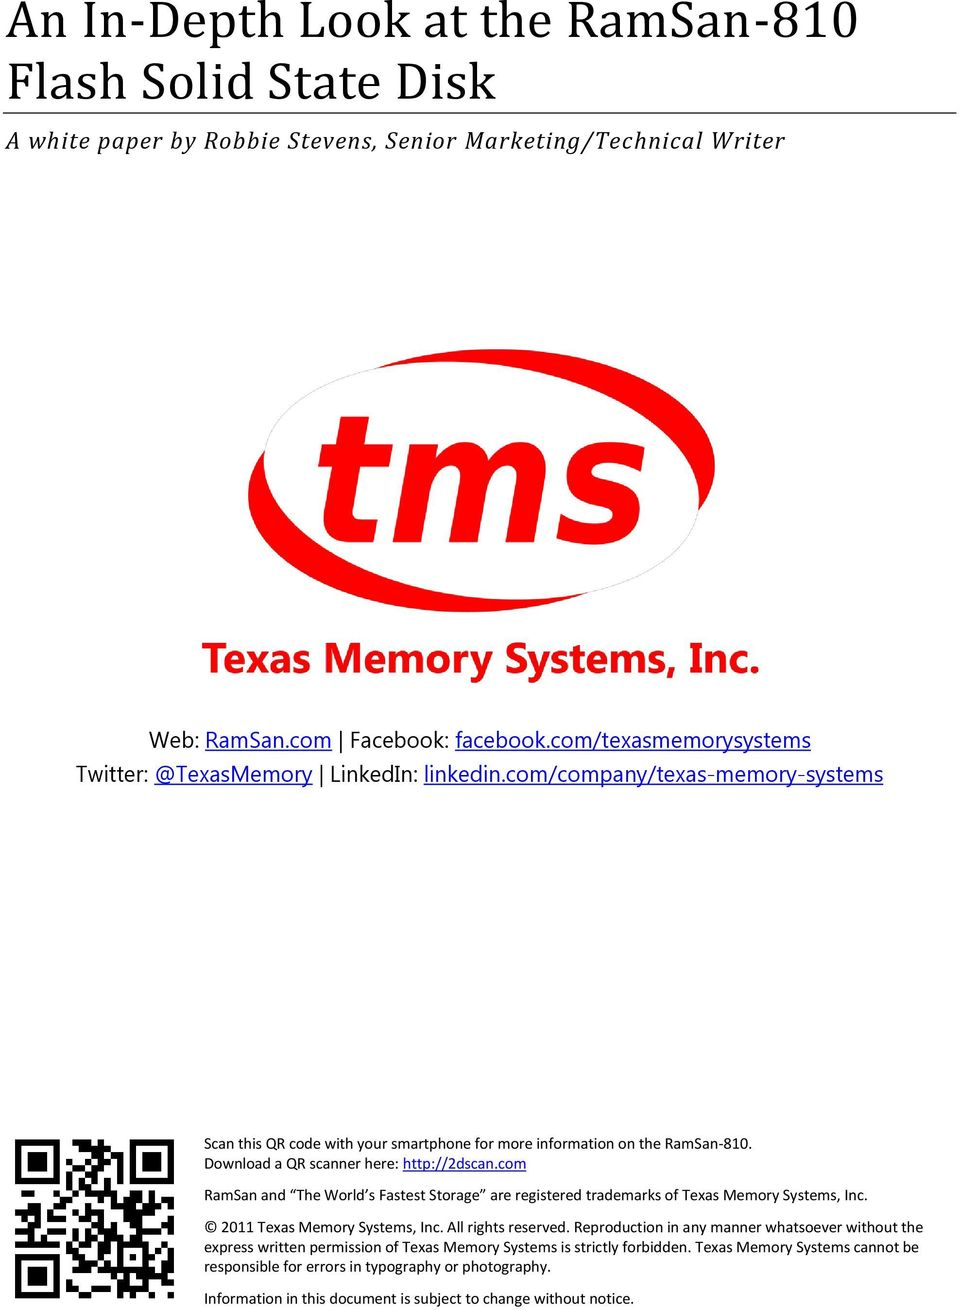 Download a QR scanner here: http://2dscan.com RamSan and The World s Fastest Storage are registered trademarks of Texas Memory Systems, Inc. 2011 Texas Memory Systems, Inc. All rights reserved.